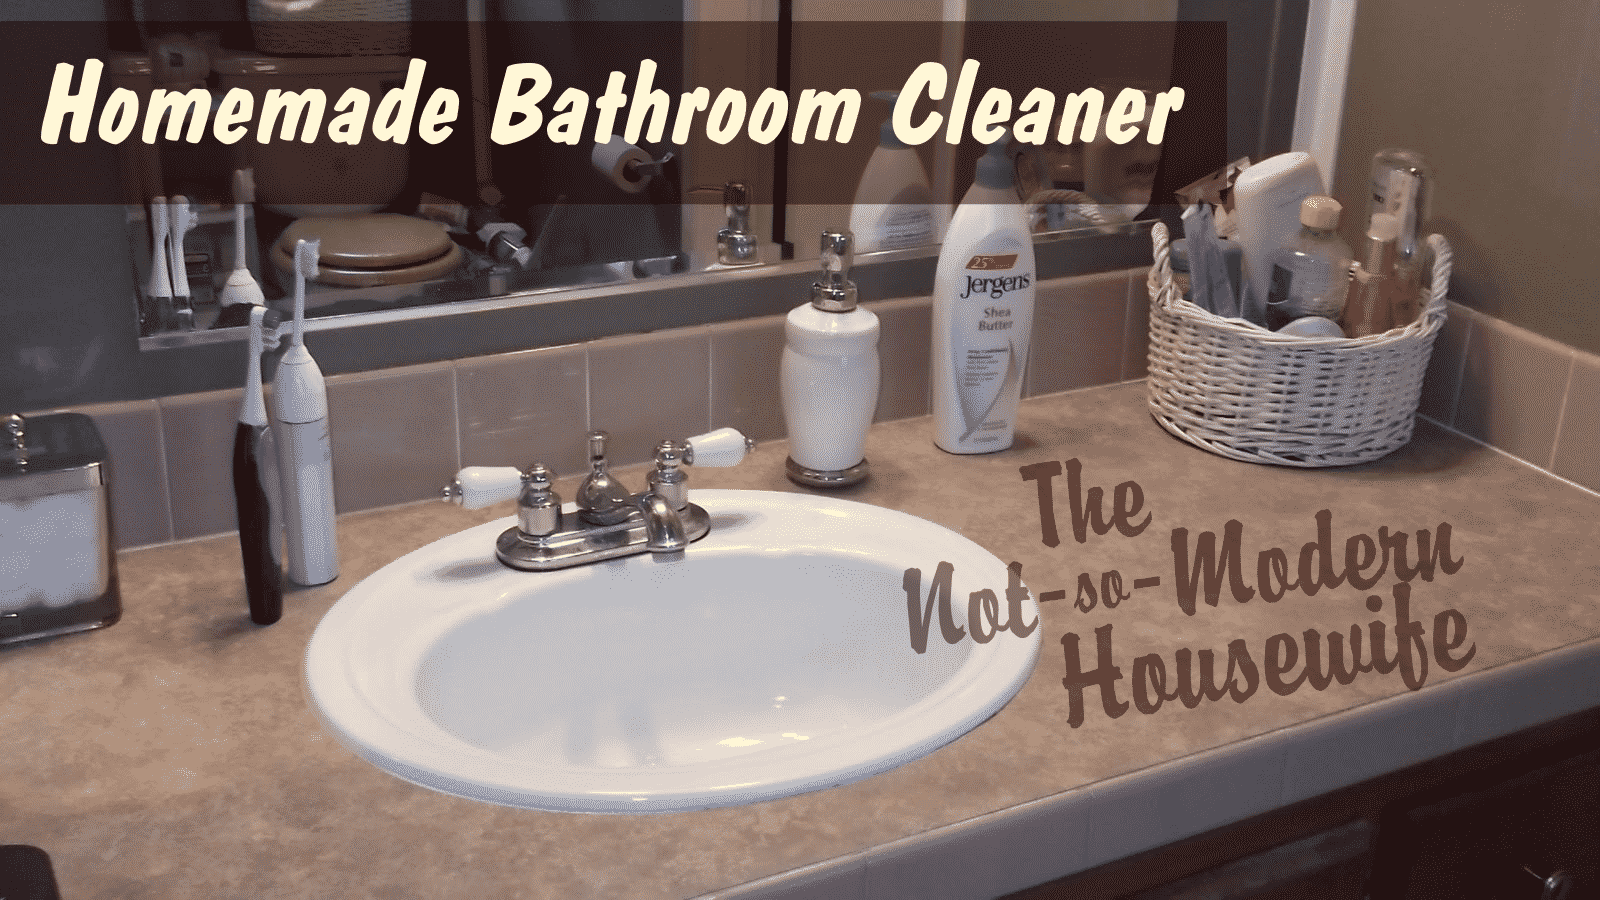 Homemade Bathroom Cleaner & Tips for keeping your bathroom clean - The Not So Modern Housewife